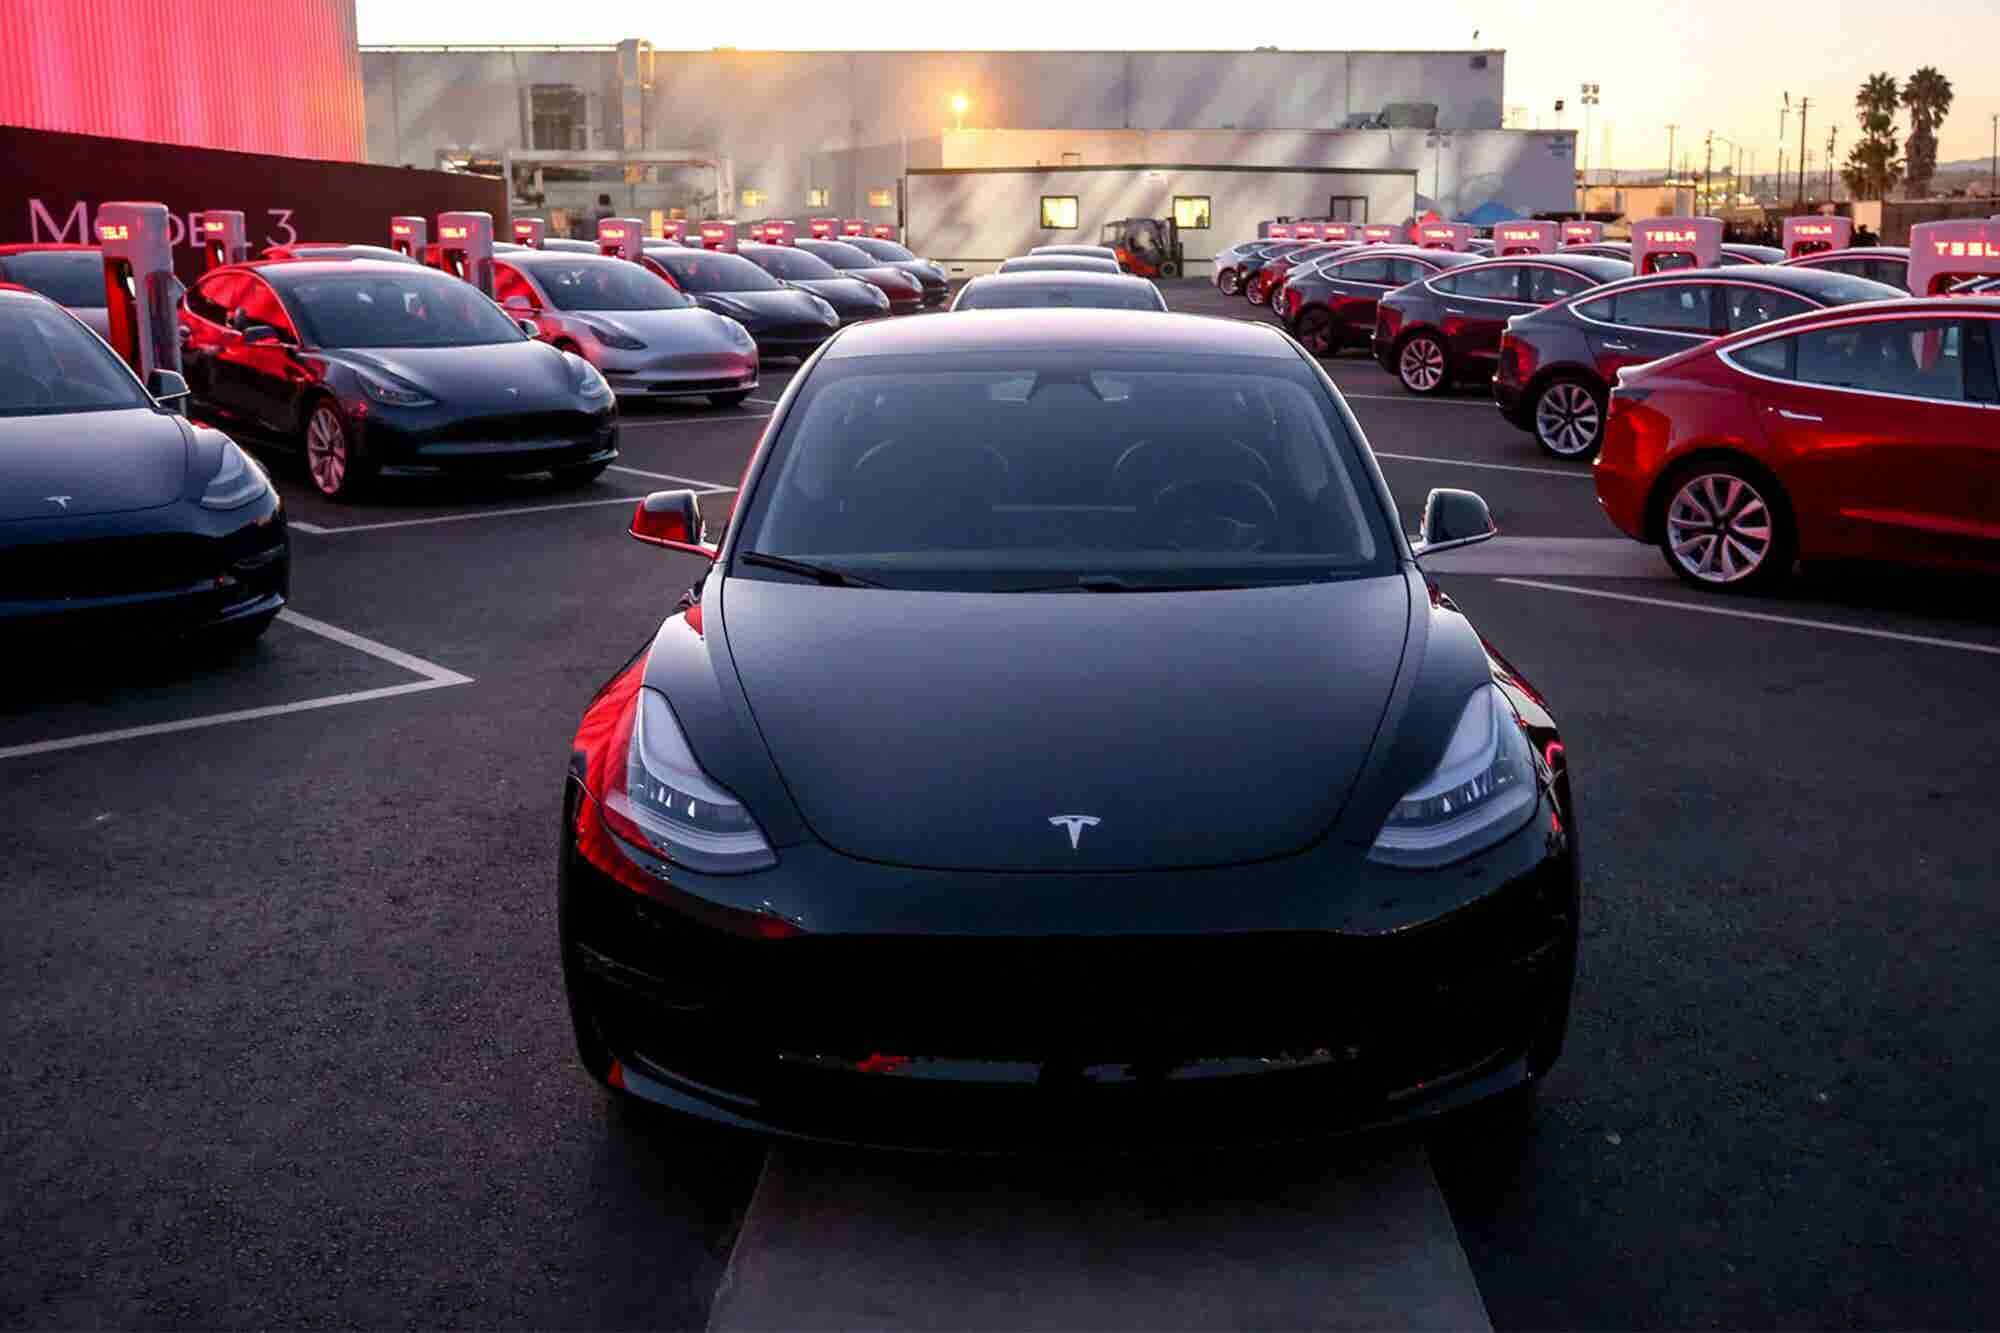 Tesla to Offer Its Own 'More Compelling' Insurance Product